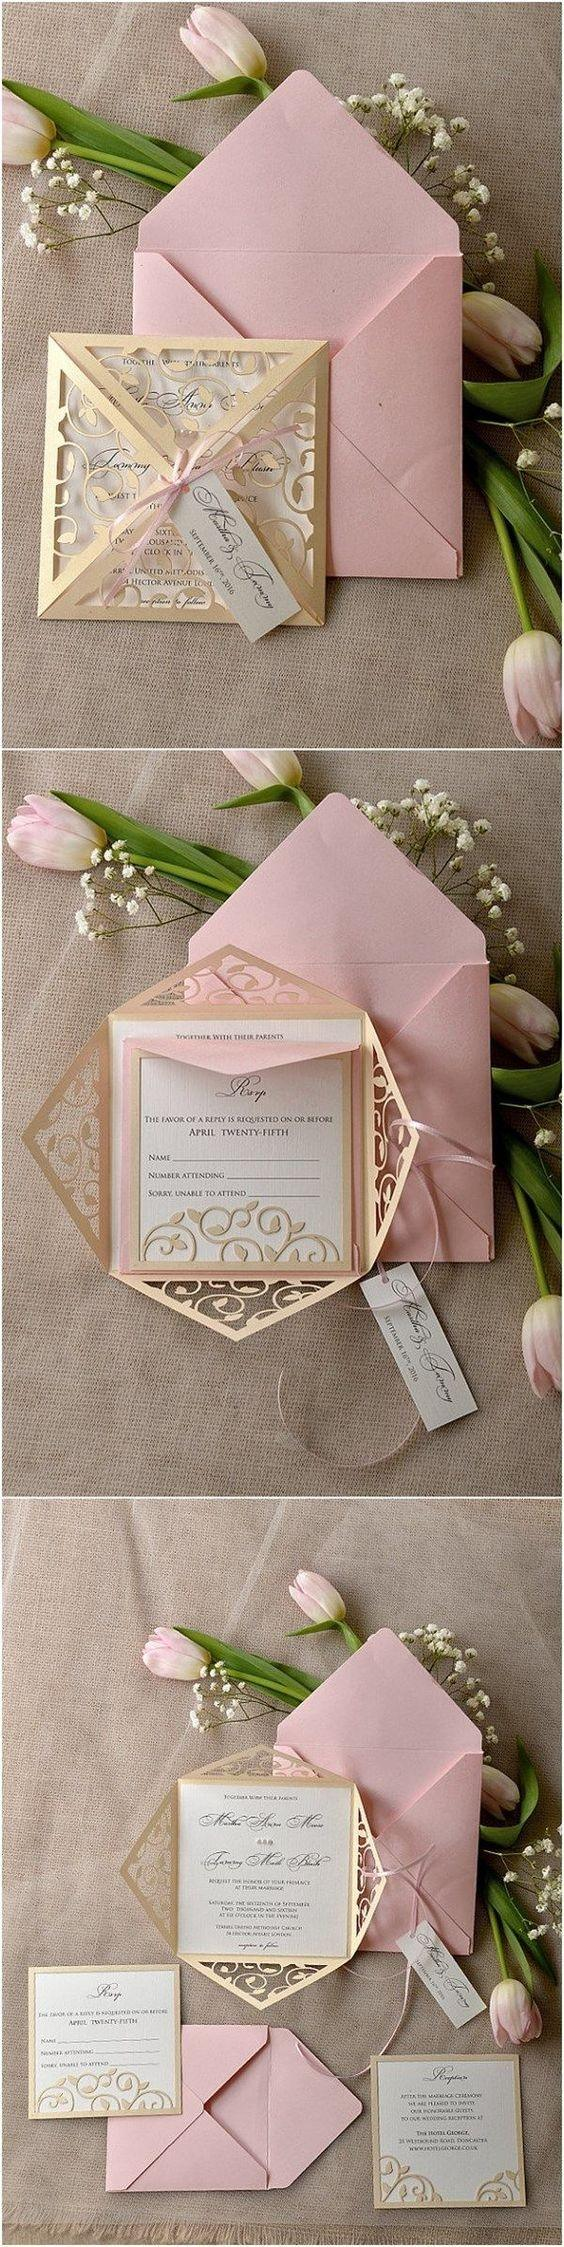 jain wedding invitation wording in hindu%0A     one of the leading destination wedding planner in Delhi and India  We  have over     years of collective experience in planning Indian